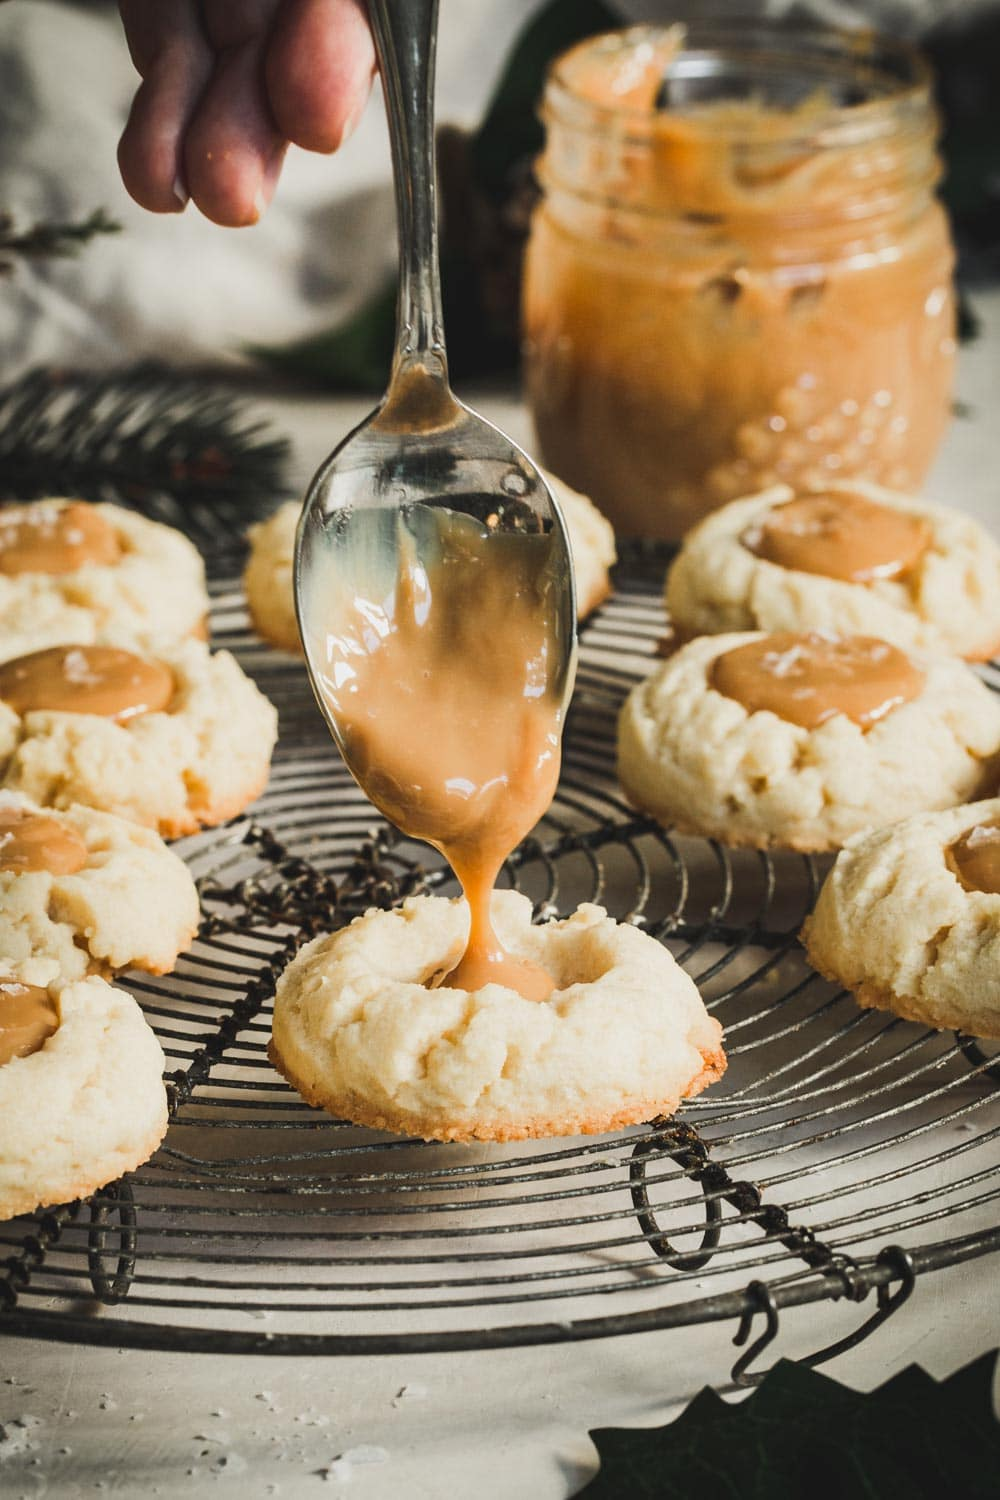 Silver spoon dropping Dulce de Leche into a baked thumbprint cookie.